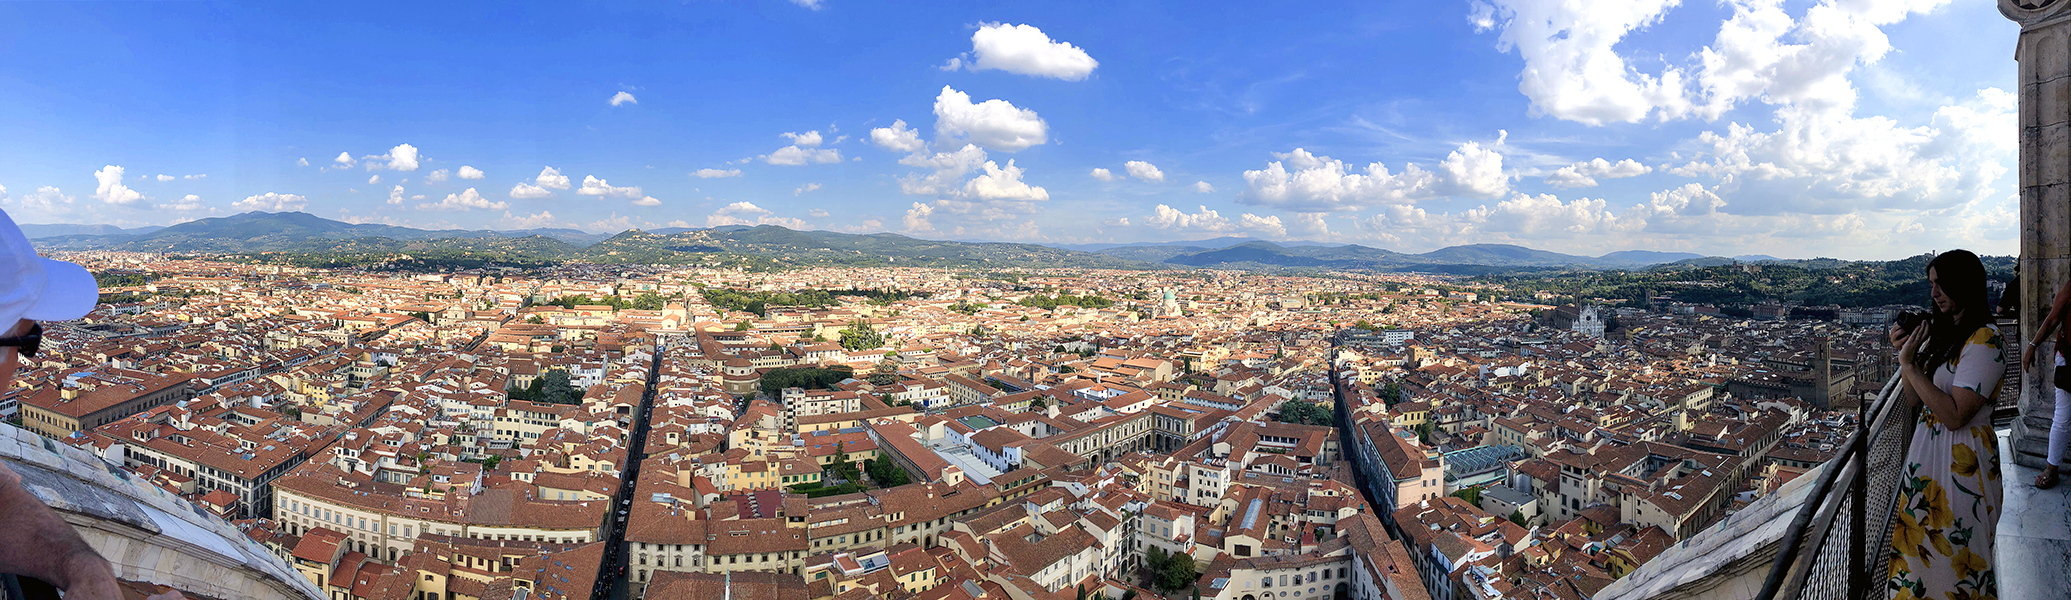 2018 ITALY_firenze_duomo view panoramic.jpg